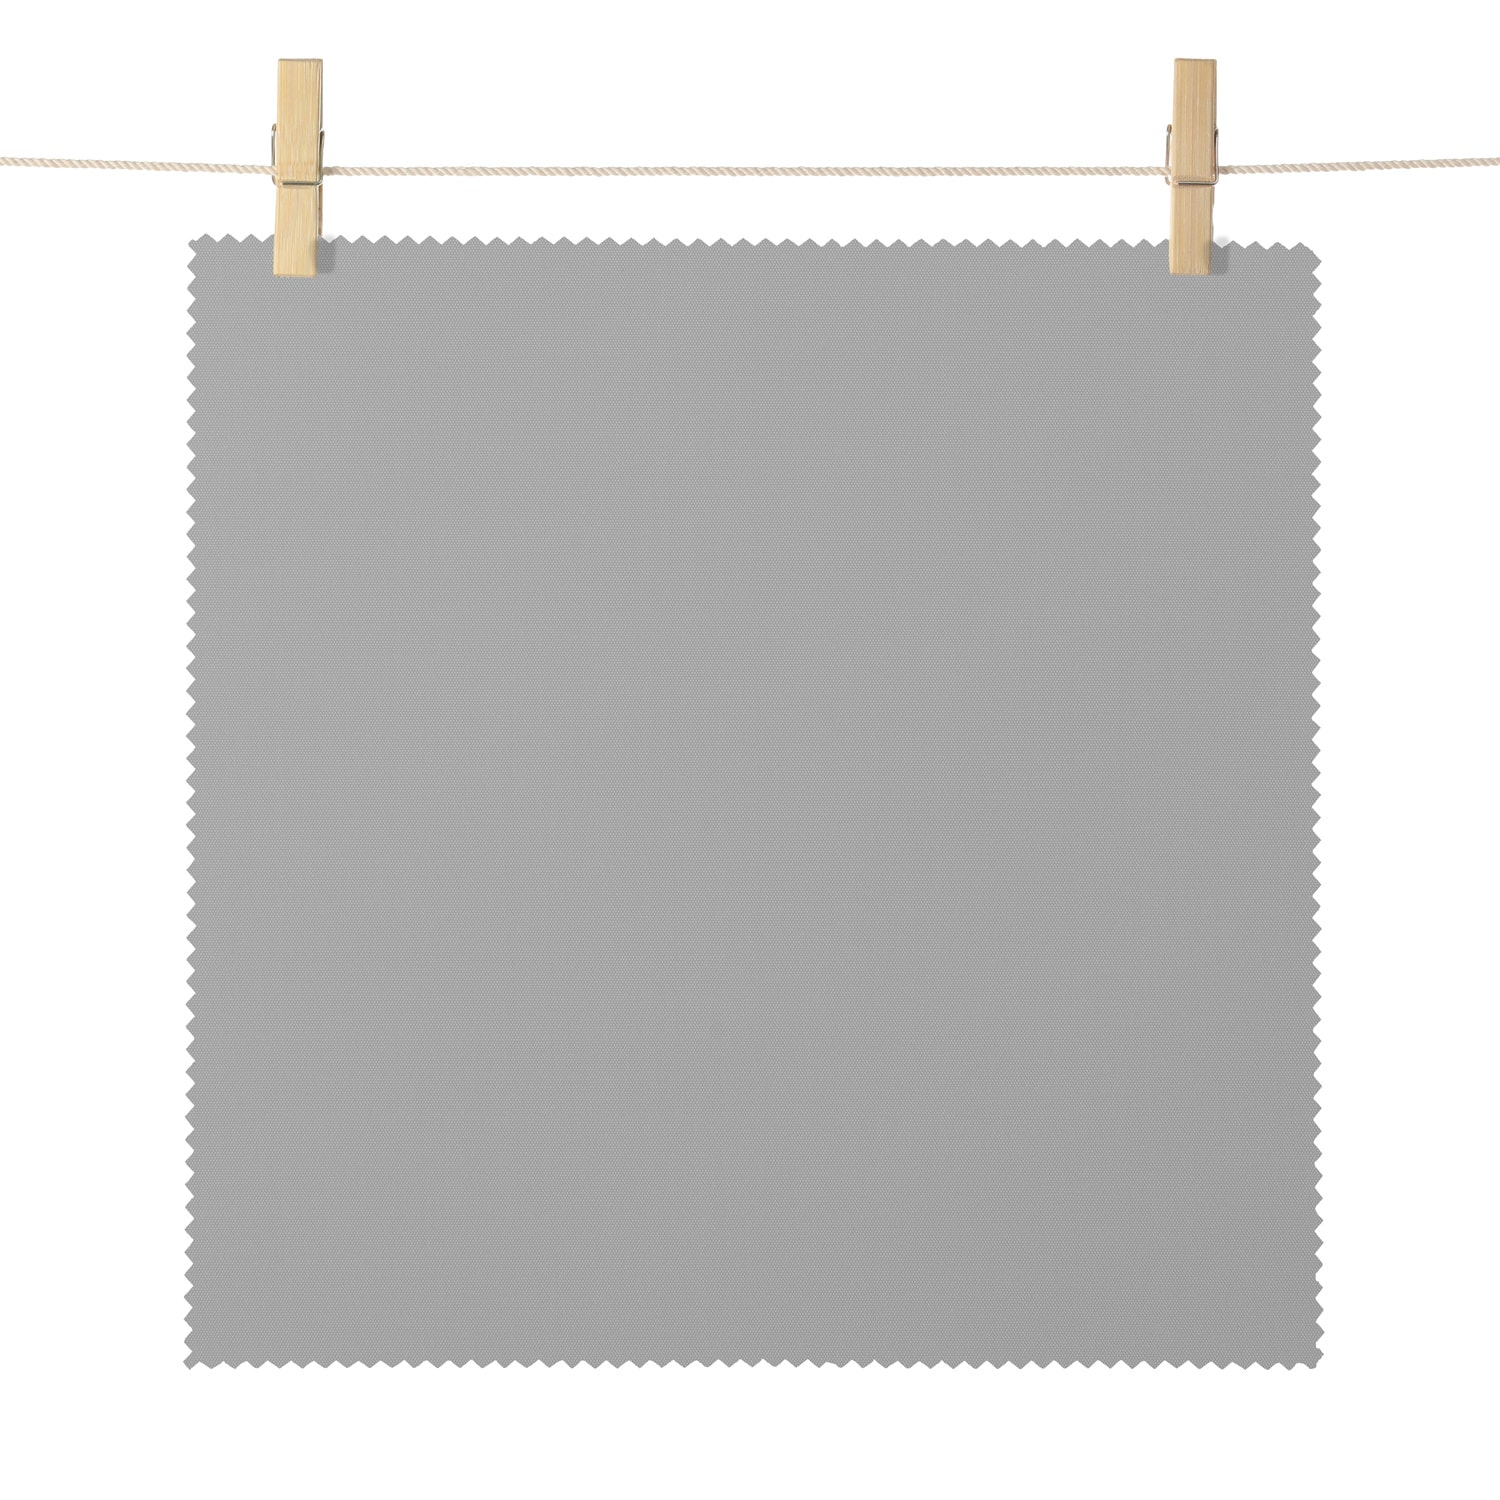 Mendocino Grey Broadcloth Textured Blackout Roller Shade Swatch